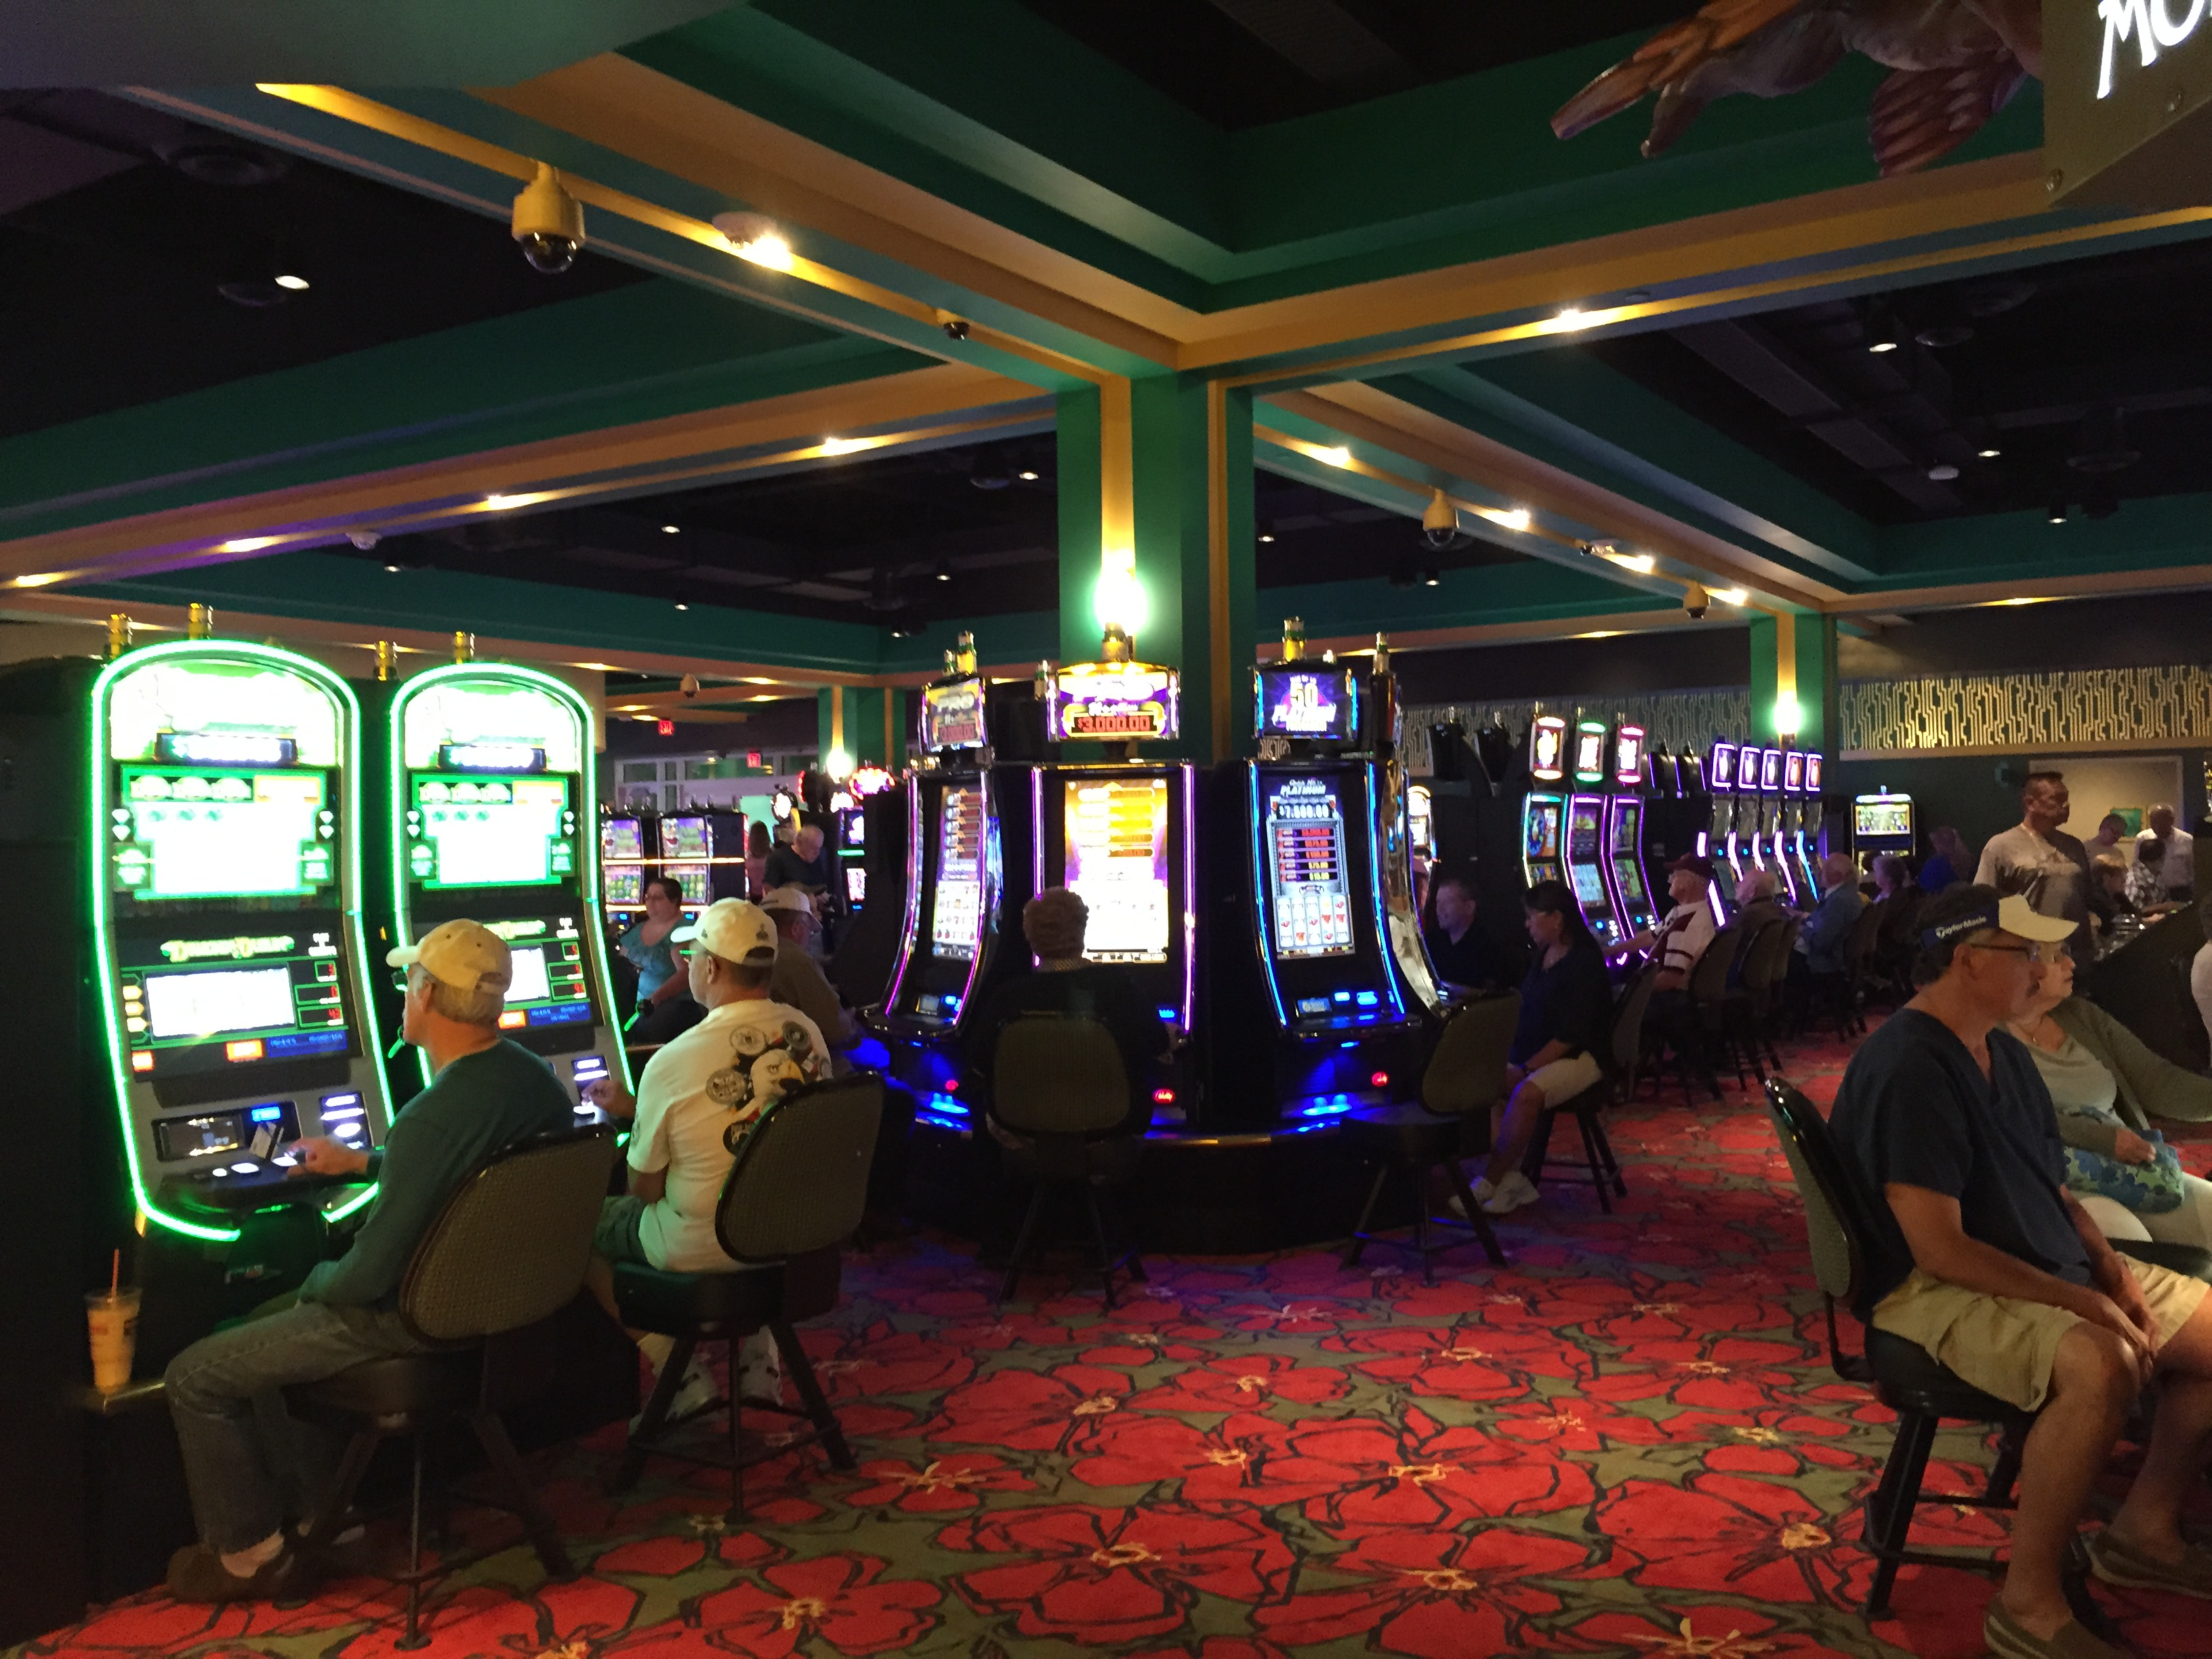 Inside the Yellow Brick Road Casino in Chittenango